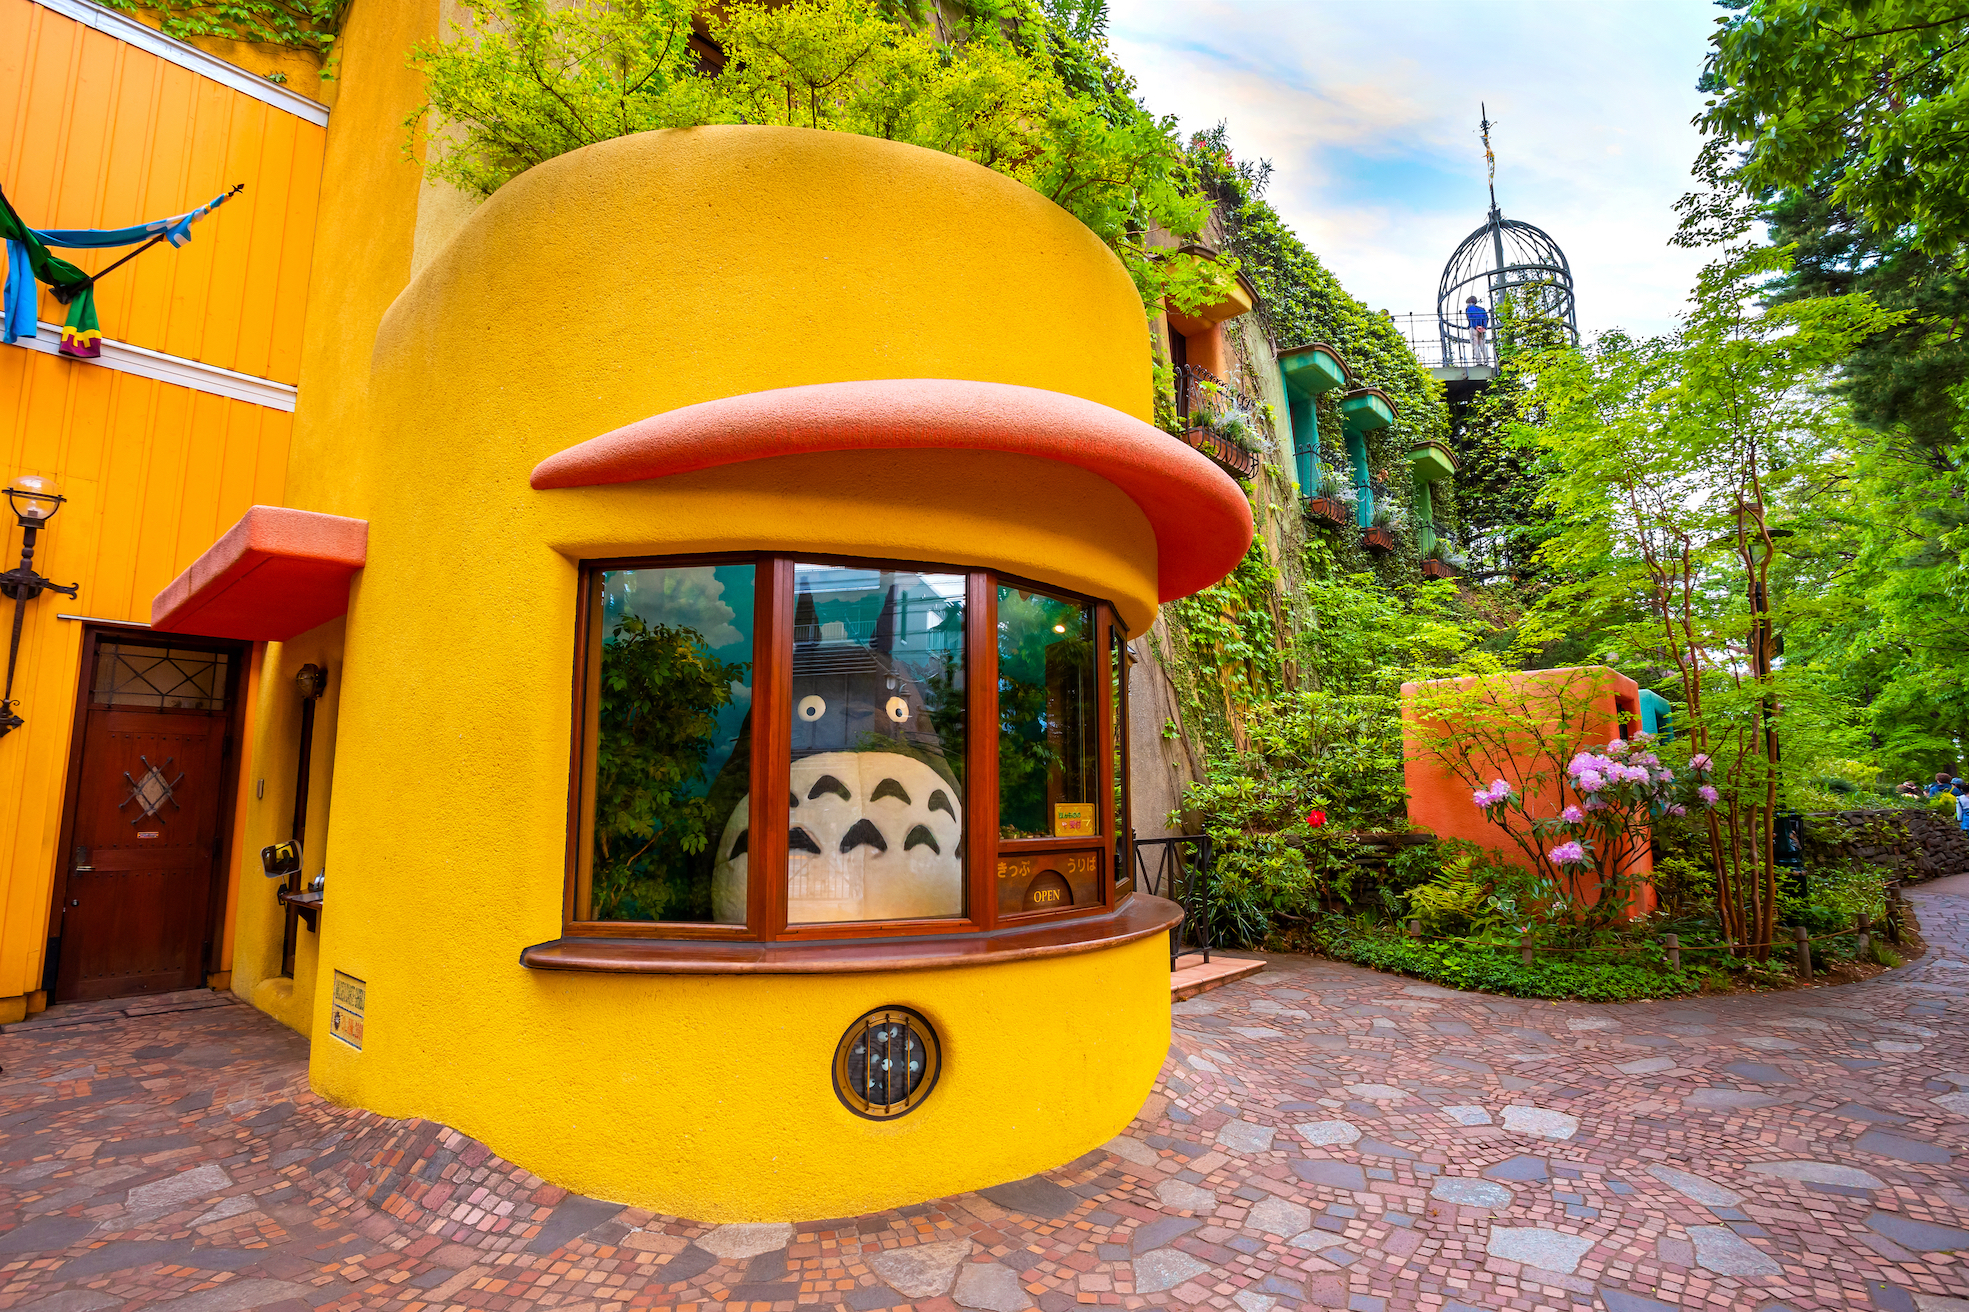 Get a sneak peek into Ghibli Museum with these videos